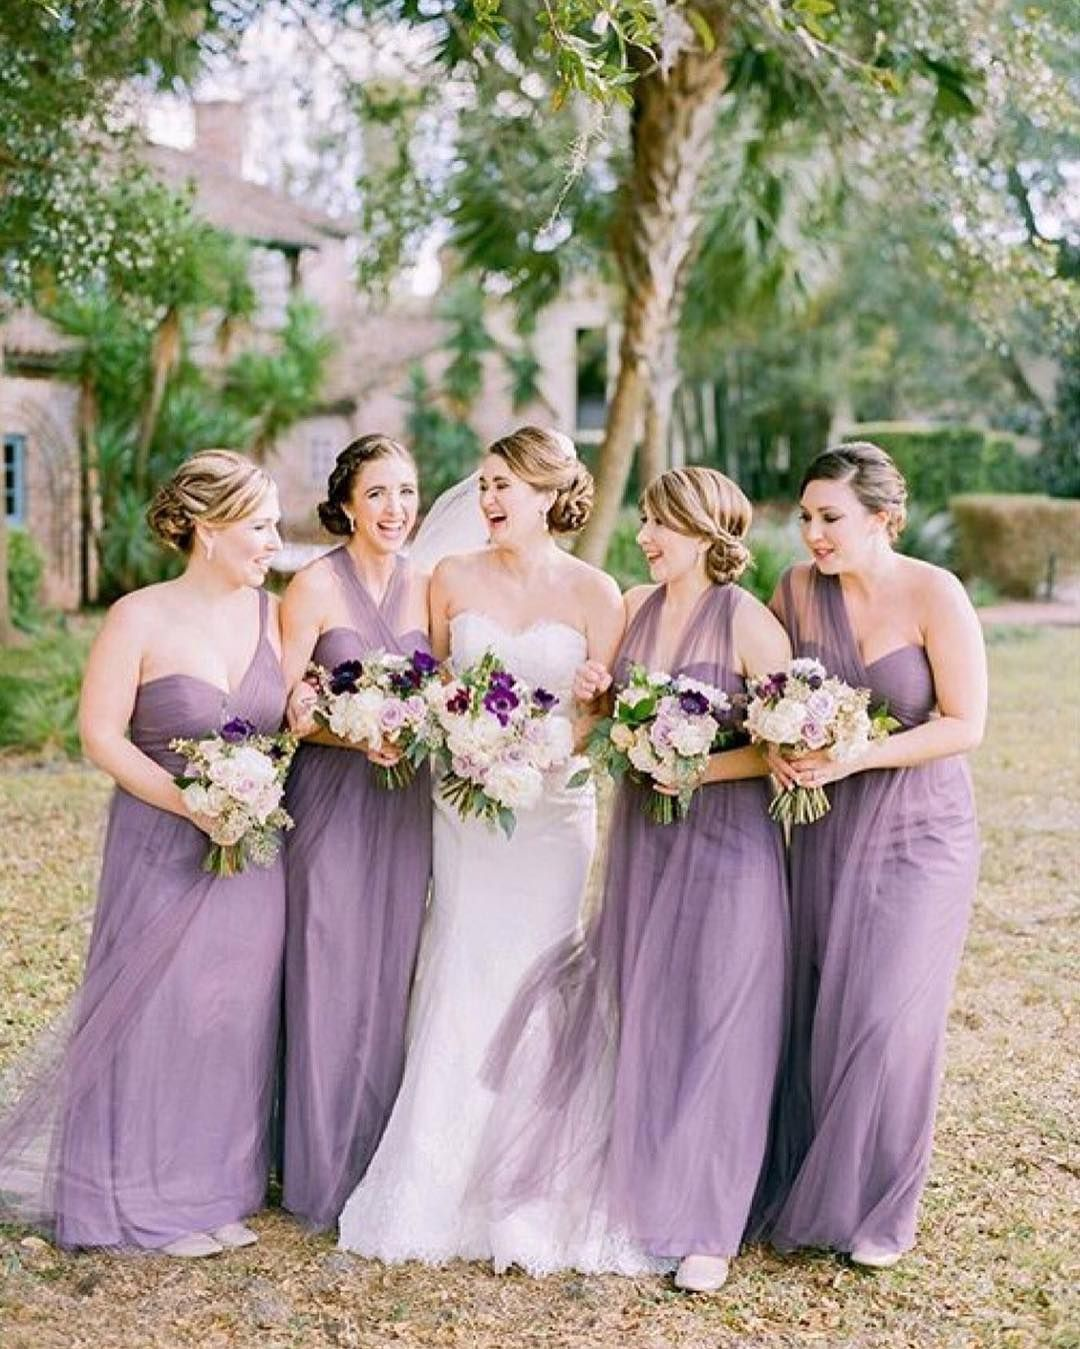 Lovely bridesmaid dresses and bouquets photo by kt crabb lovely bridesmaid dresses and bouquets photo by kt crabb mysweetengagement ombrellifo Images